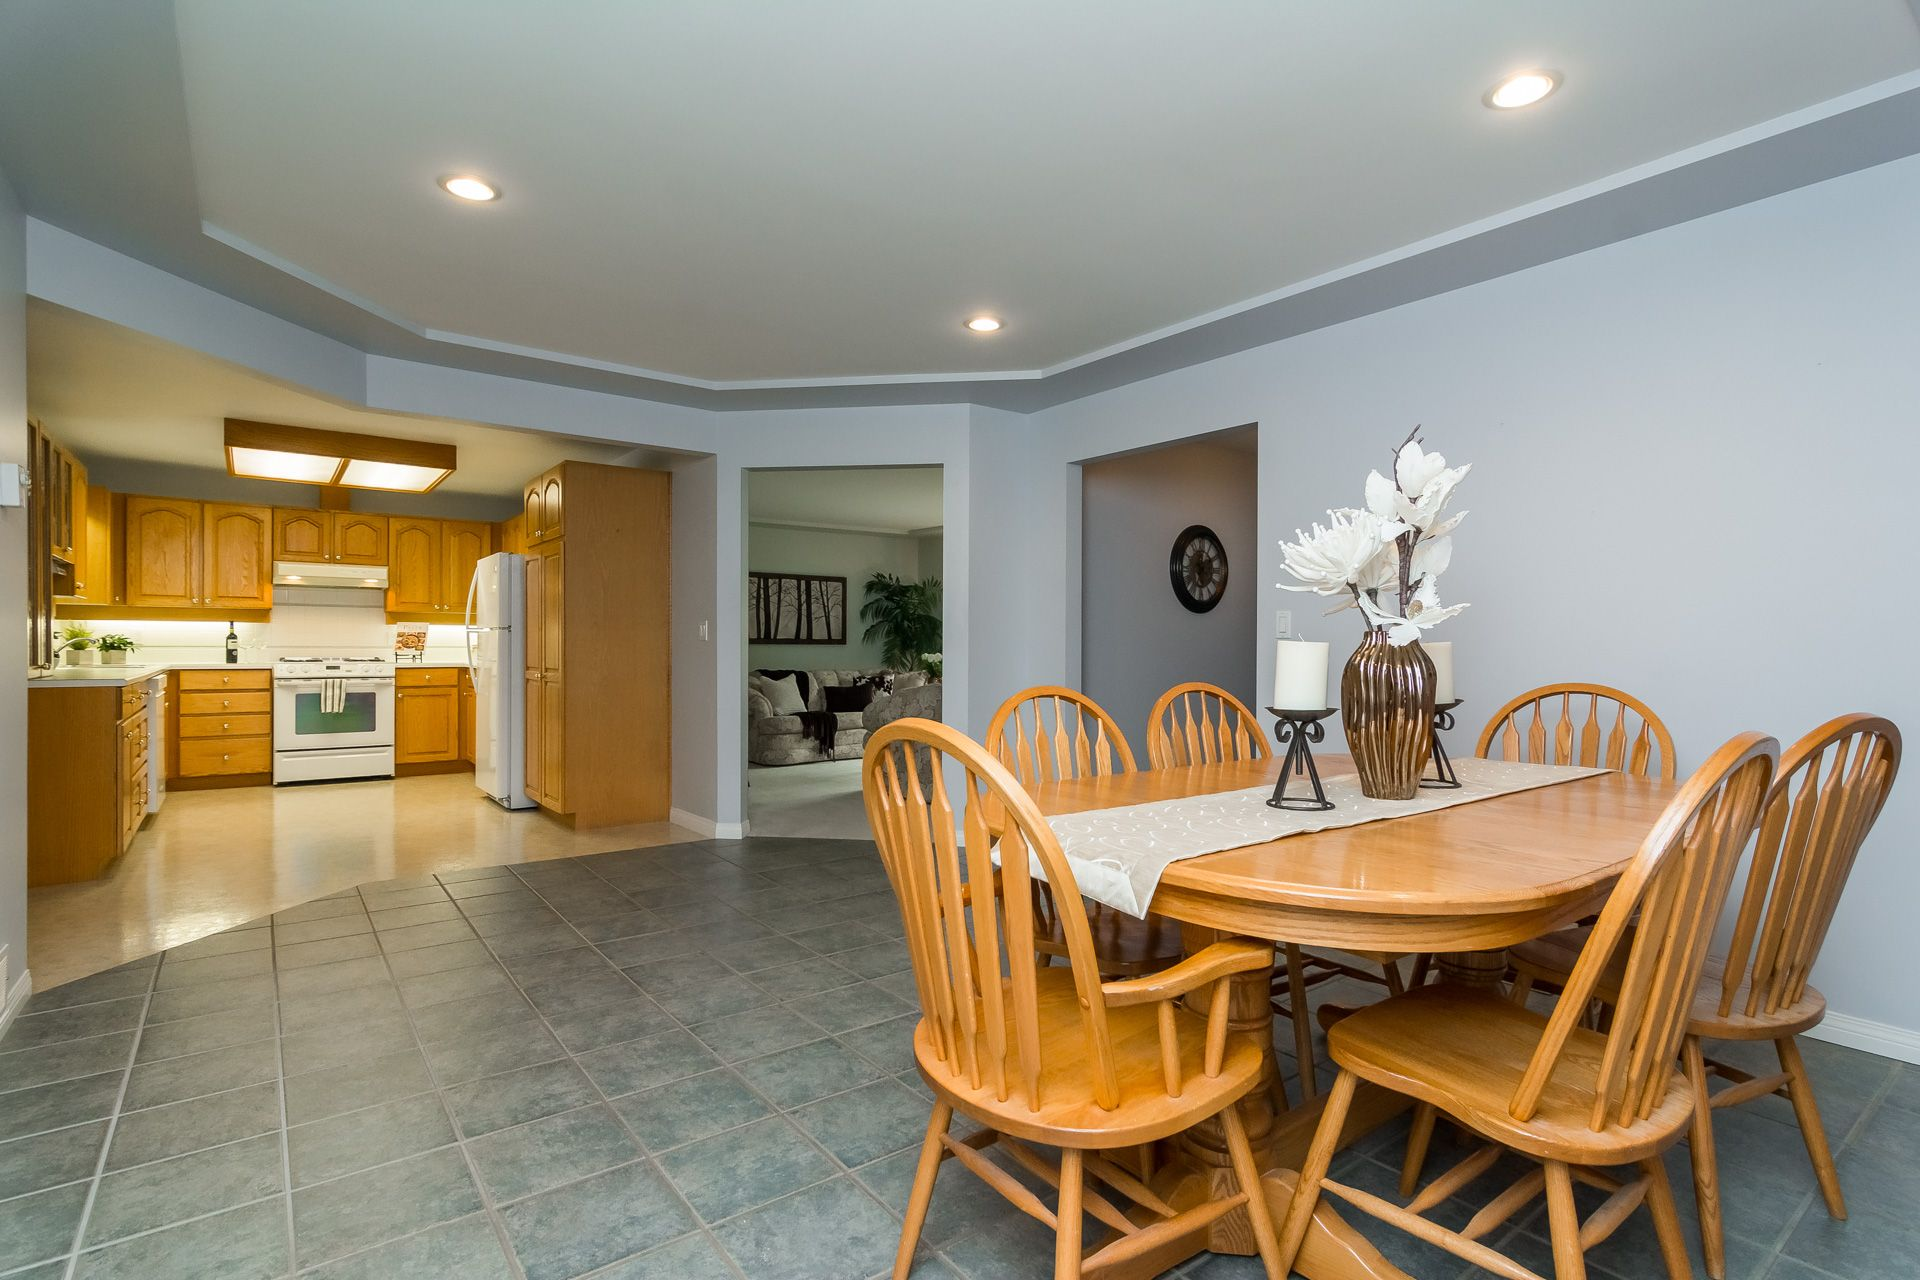 """Photo 17: Photos: 19941 37 Avenue in Langley: Brookswood Langley House for sale in """"Brookswood"""" : MLS®# R2240474"""